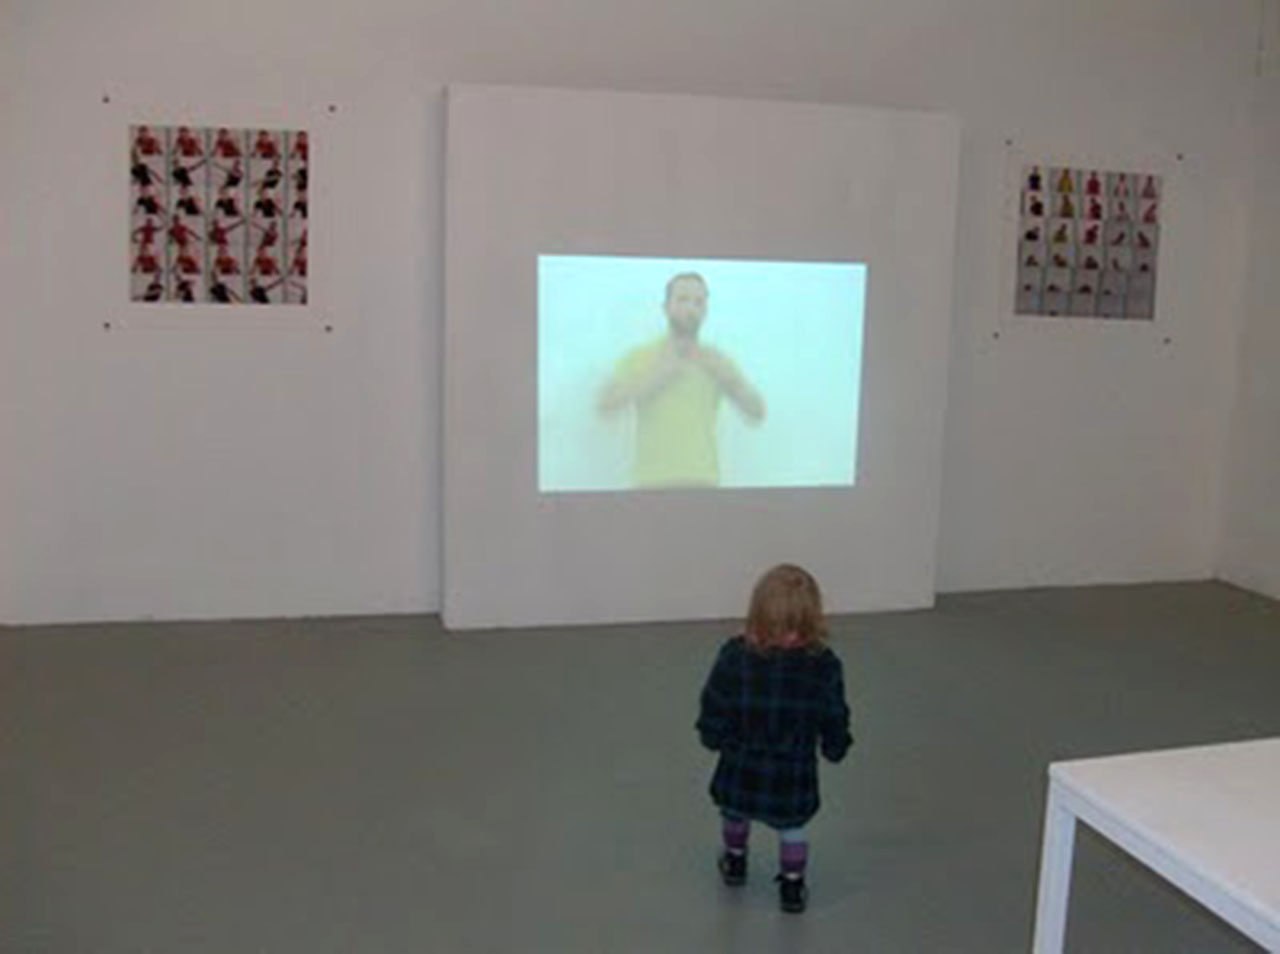 Installation view at WEP, Groningen